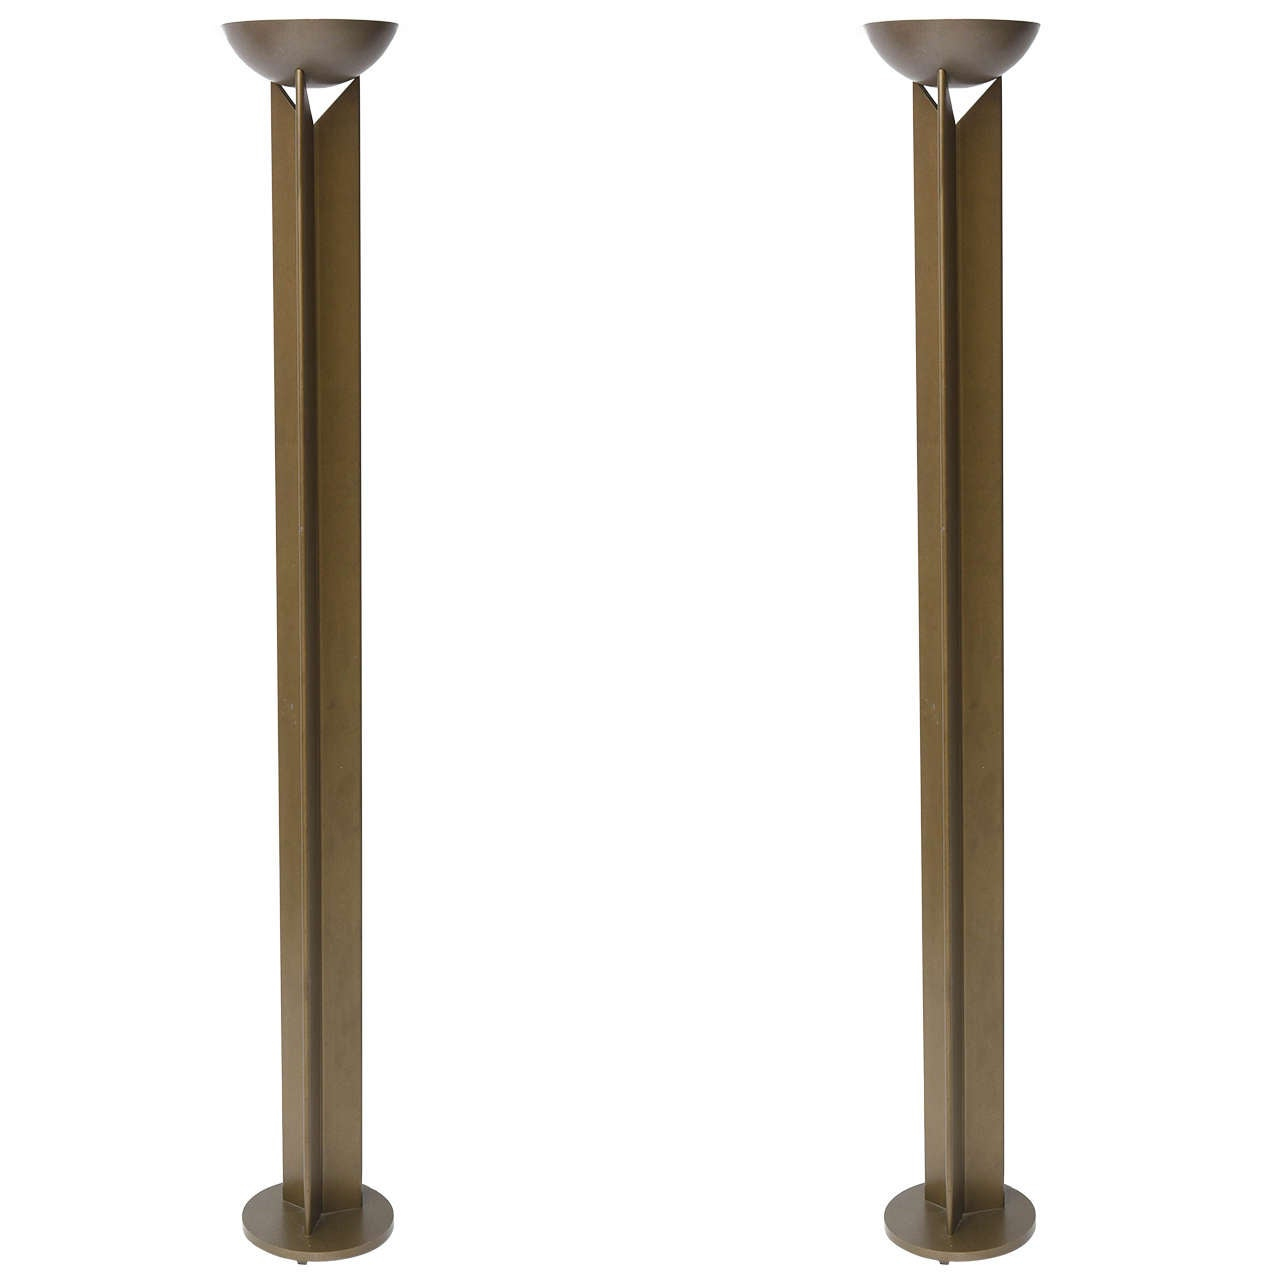 Pair of French Modern Bronzed Metal Torcheres 1